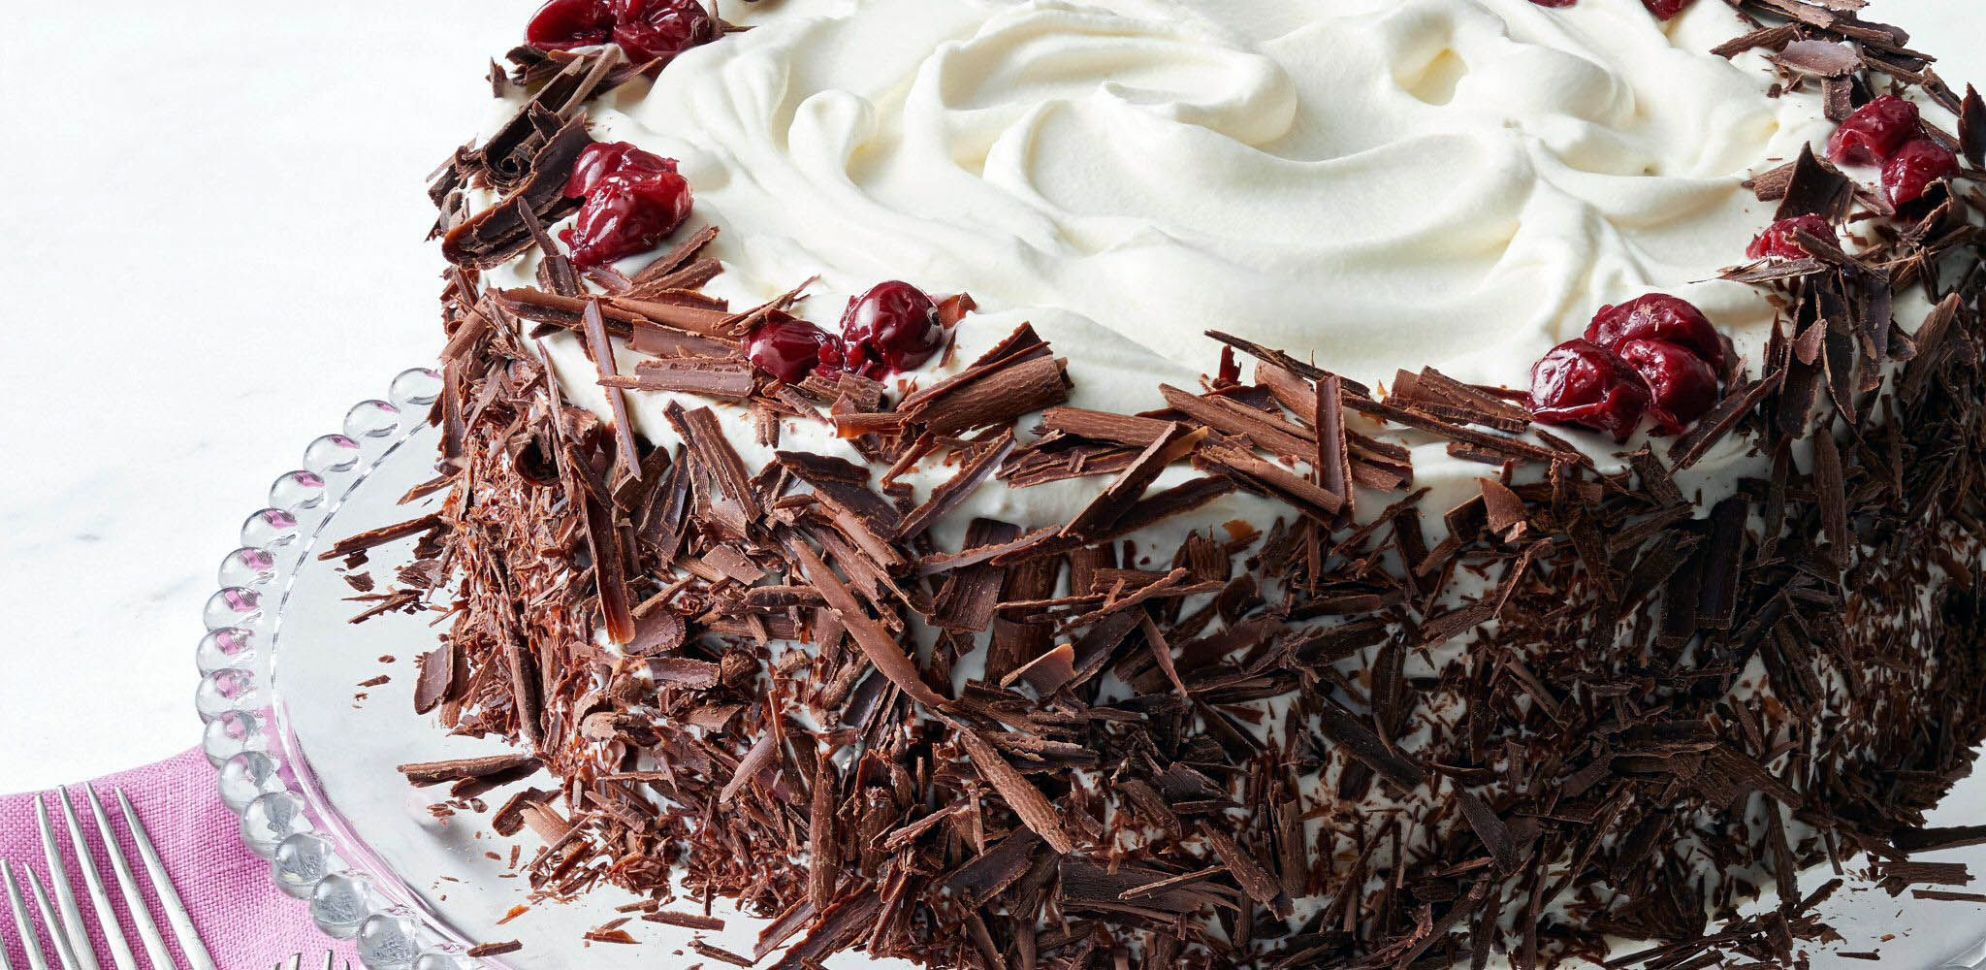 Nice black forest cake recipe 11 x 11 Browse our recipe selection ...